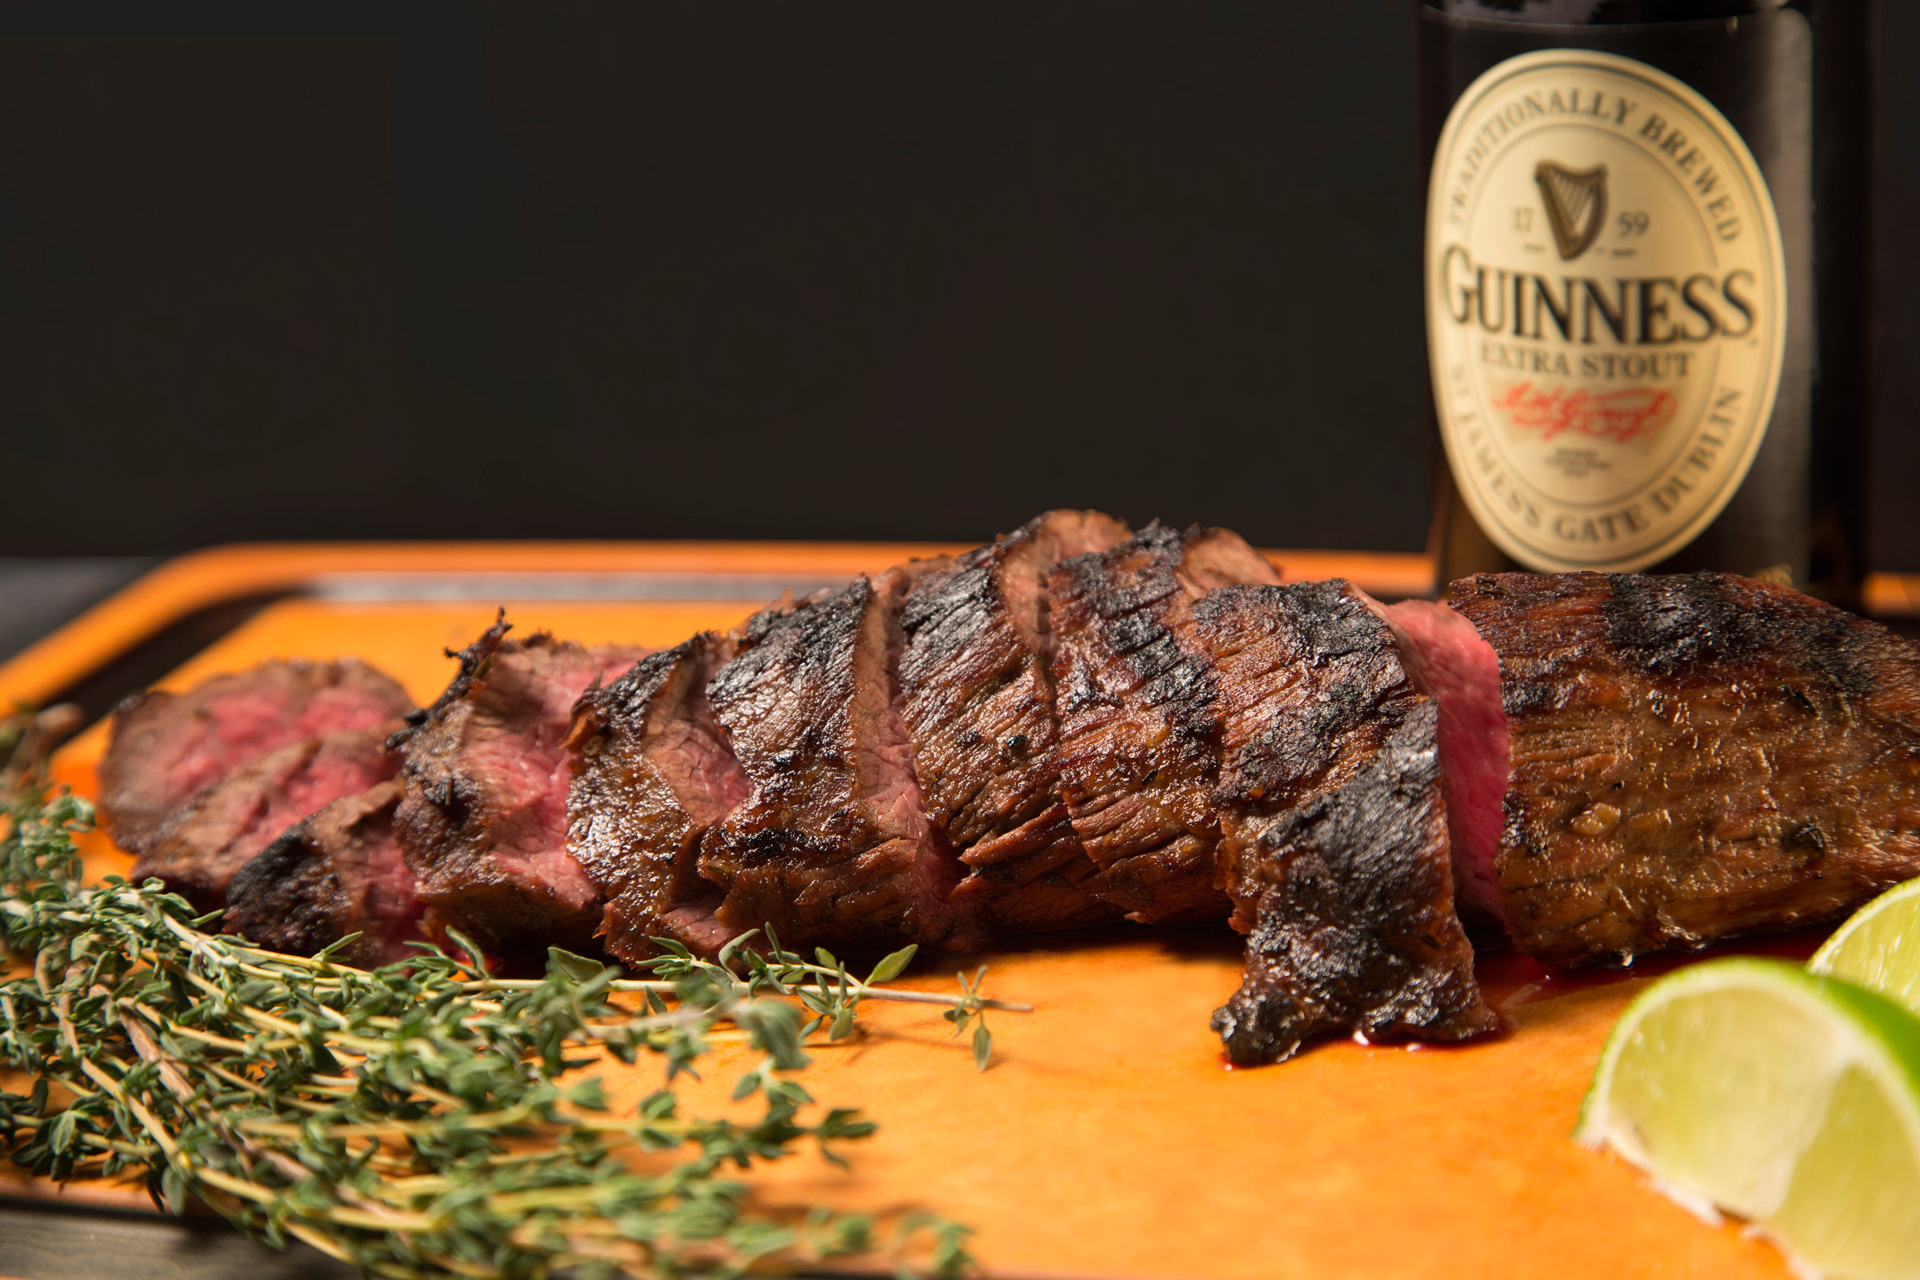 Do your guests a favor this St. Patrick's Day and make this tri-tip steak marinated in an Irish stout beer with fresh lime zest, garlic, herbs, and pepper.